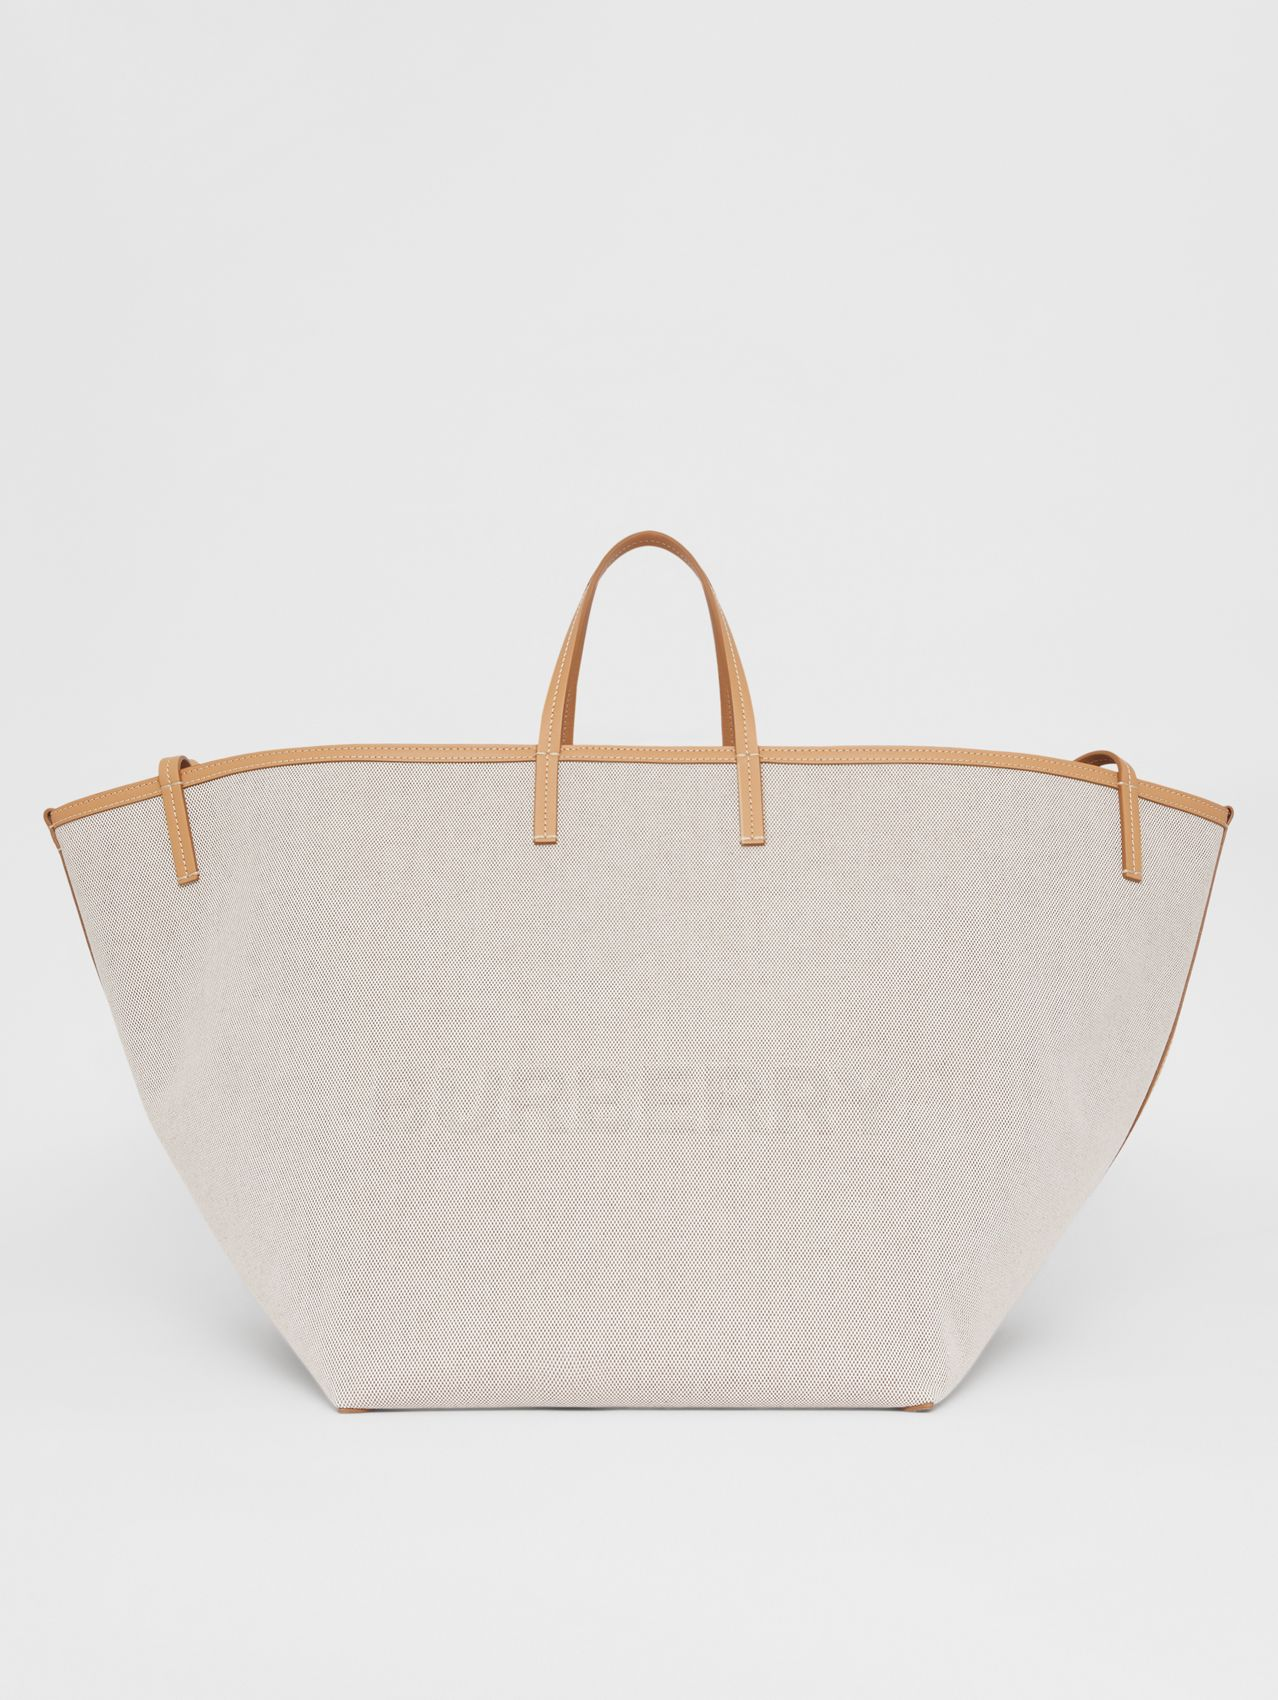 Extra Large Embossed Logo Cotton Canvas Beach Tote in Soft Fawn/warm Sand